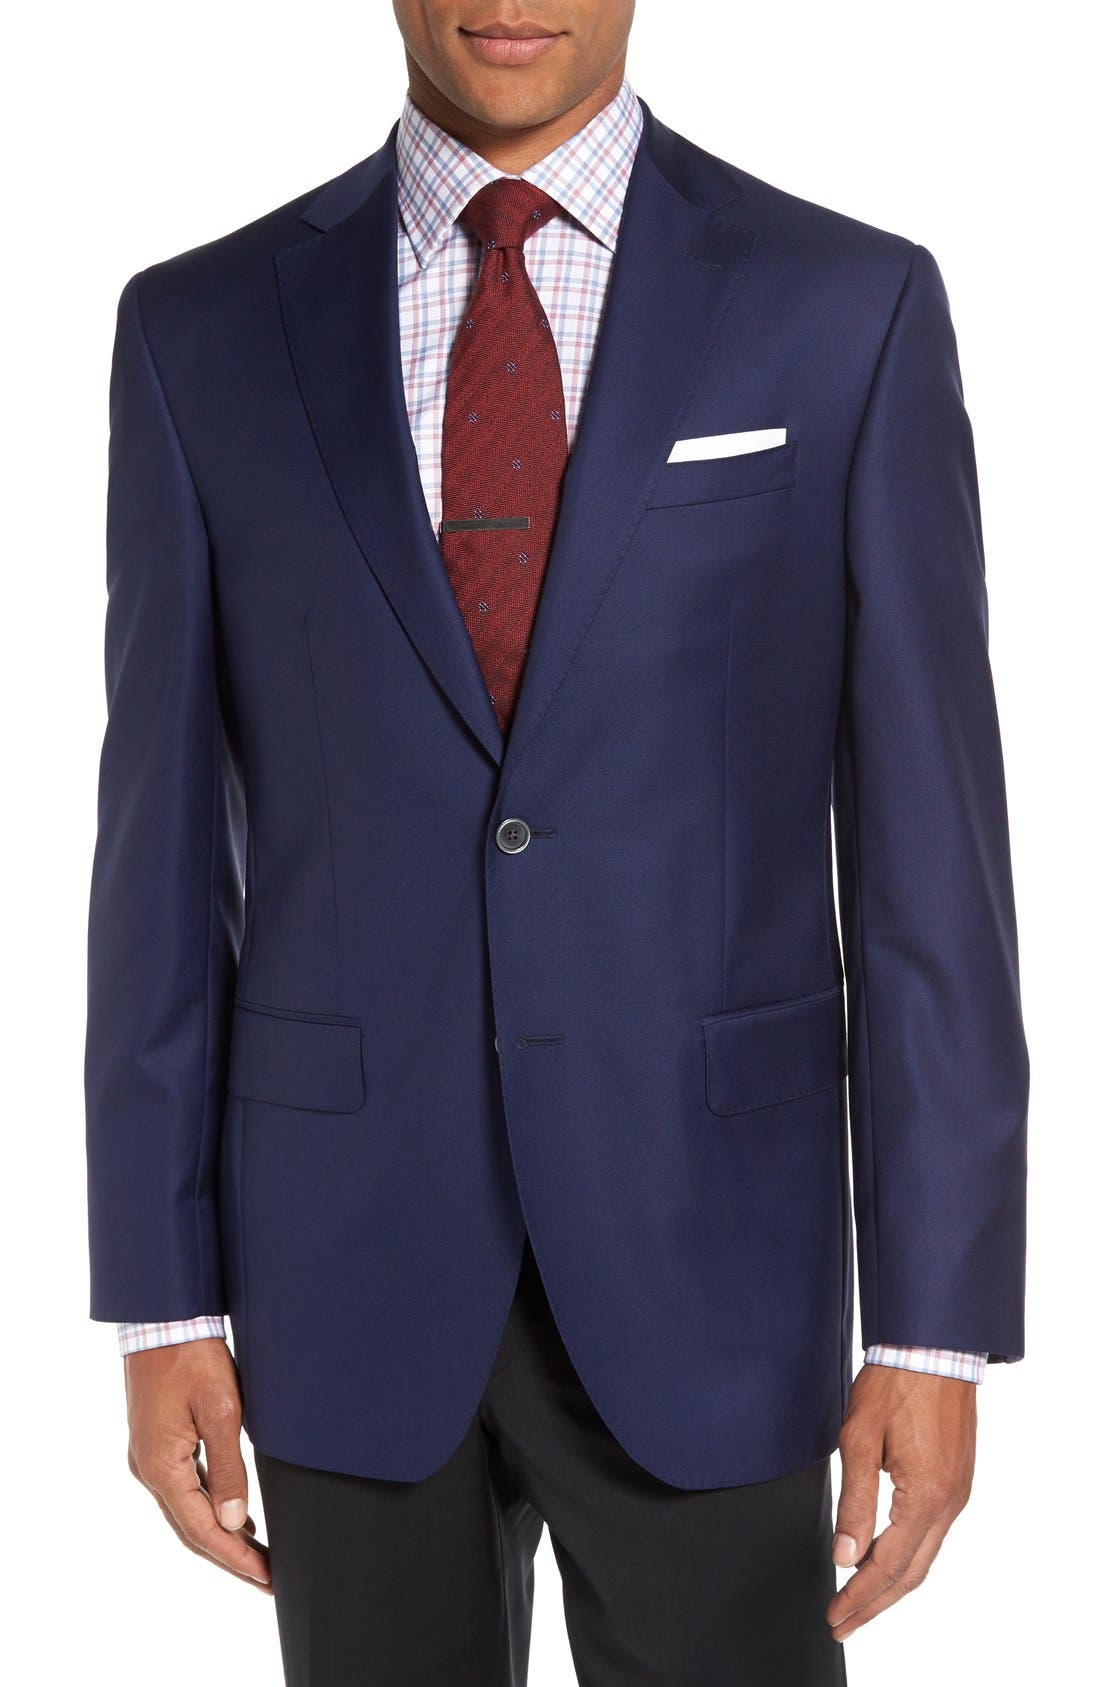 DAVID DONAHUE, 'Connor' Classic Fit Solid Wool Sport Coat, Main thumbnail 1, color, NAVY